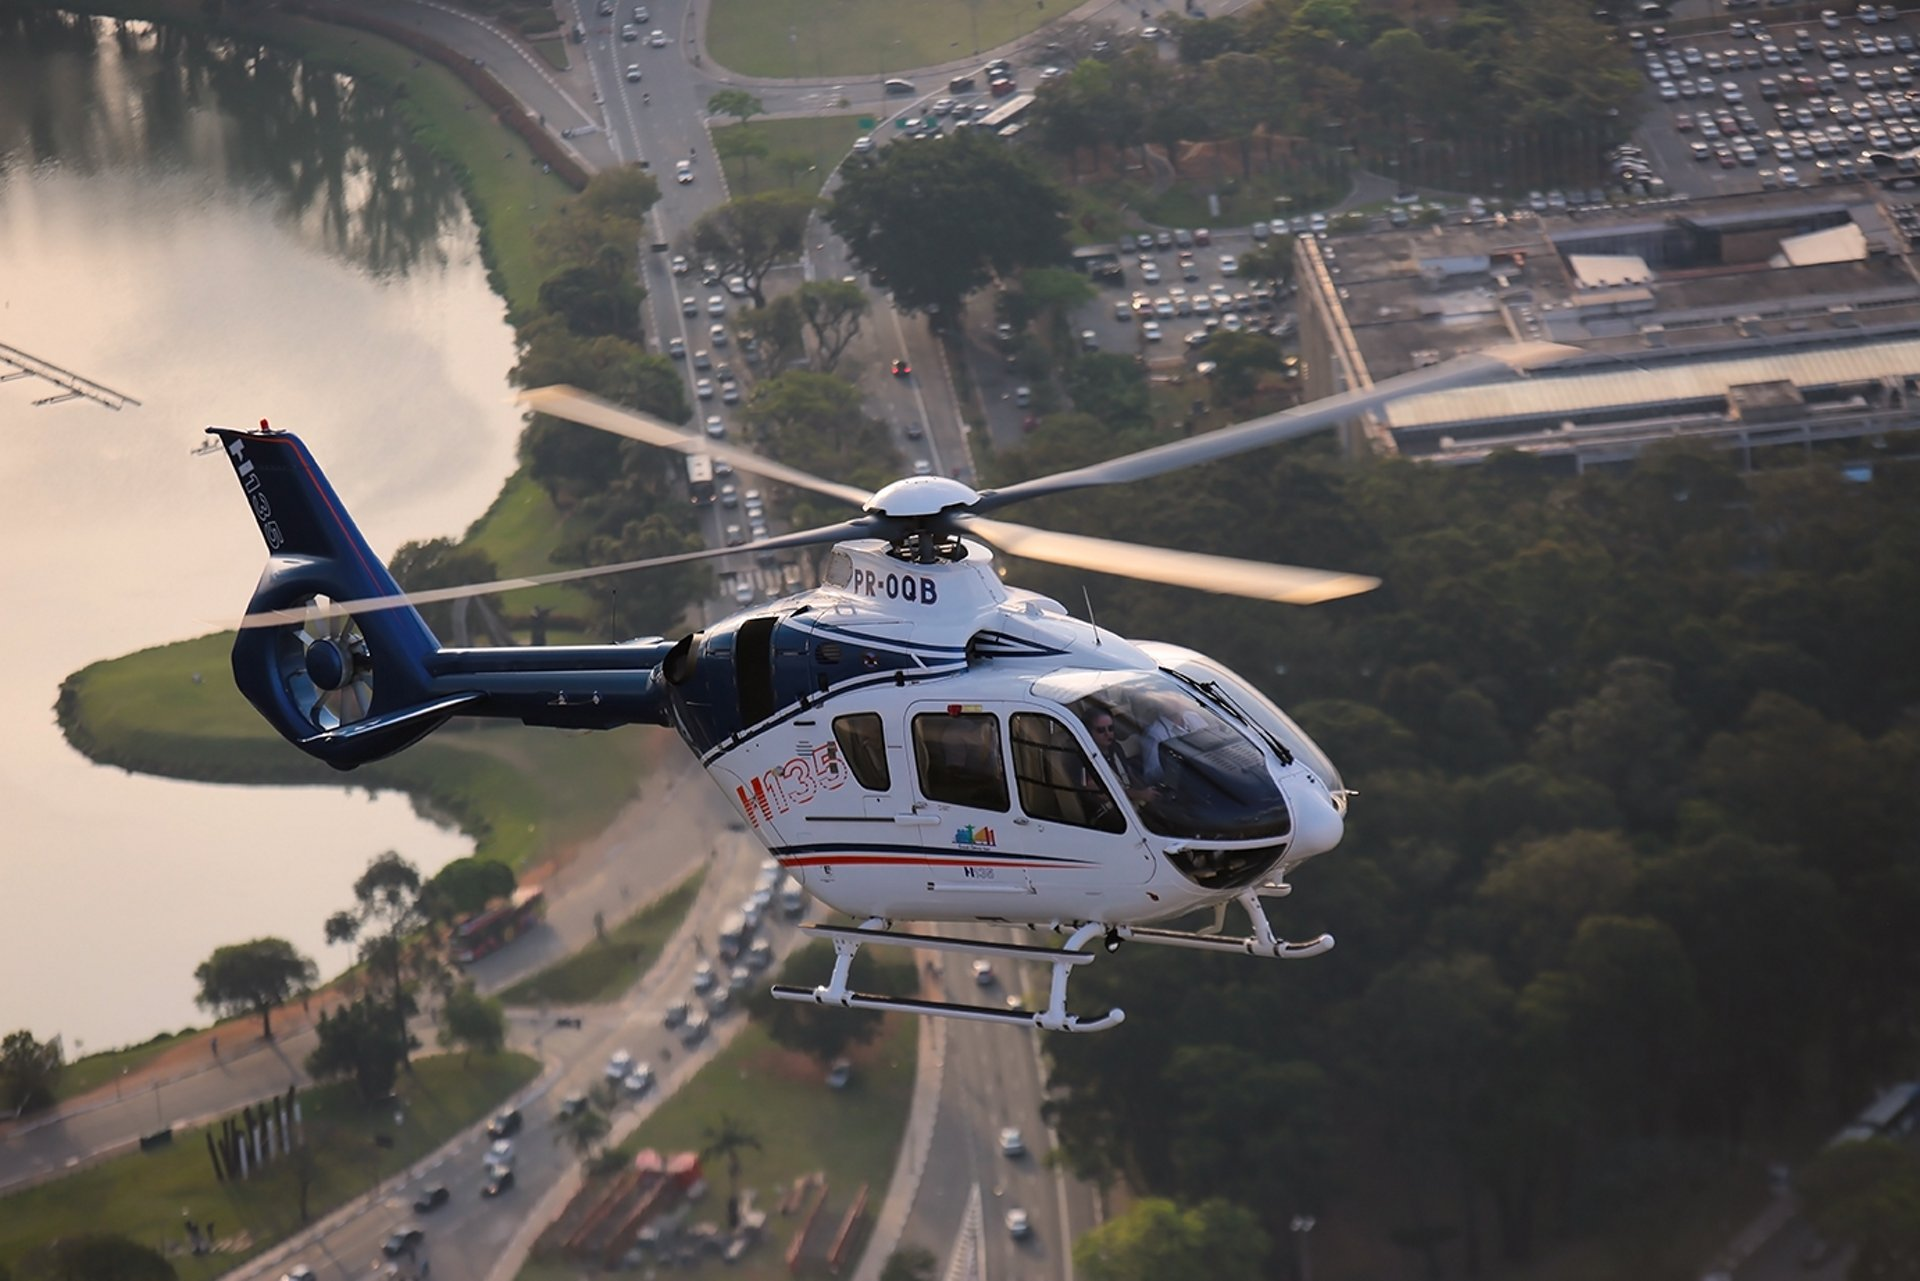 LABACE 2016 marks start of demo tour for first H135 upgraded in Brazil